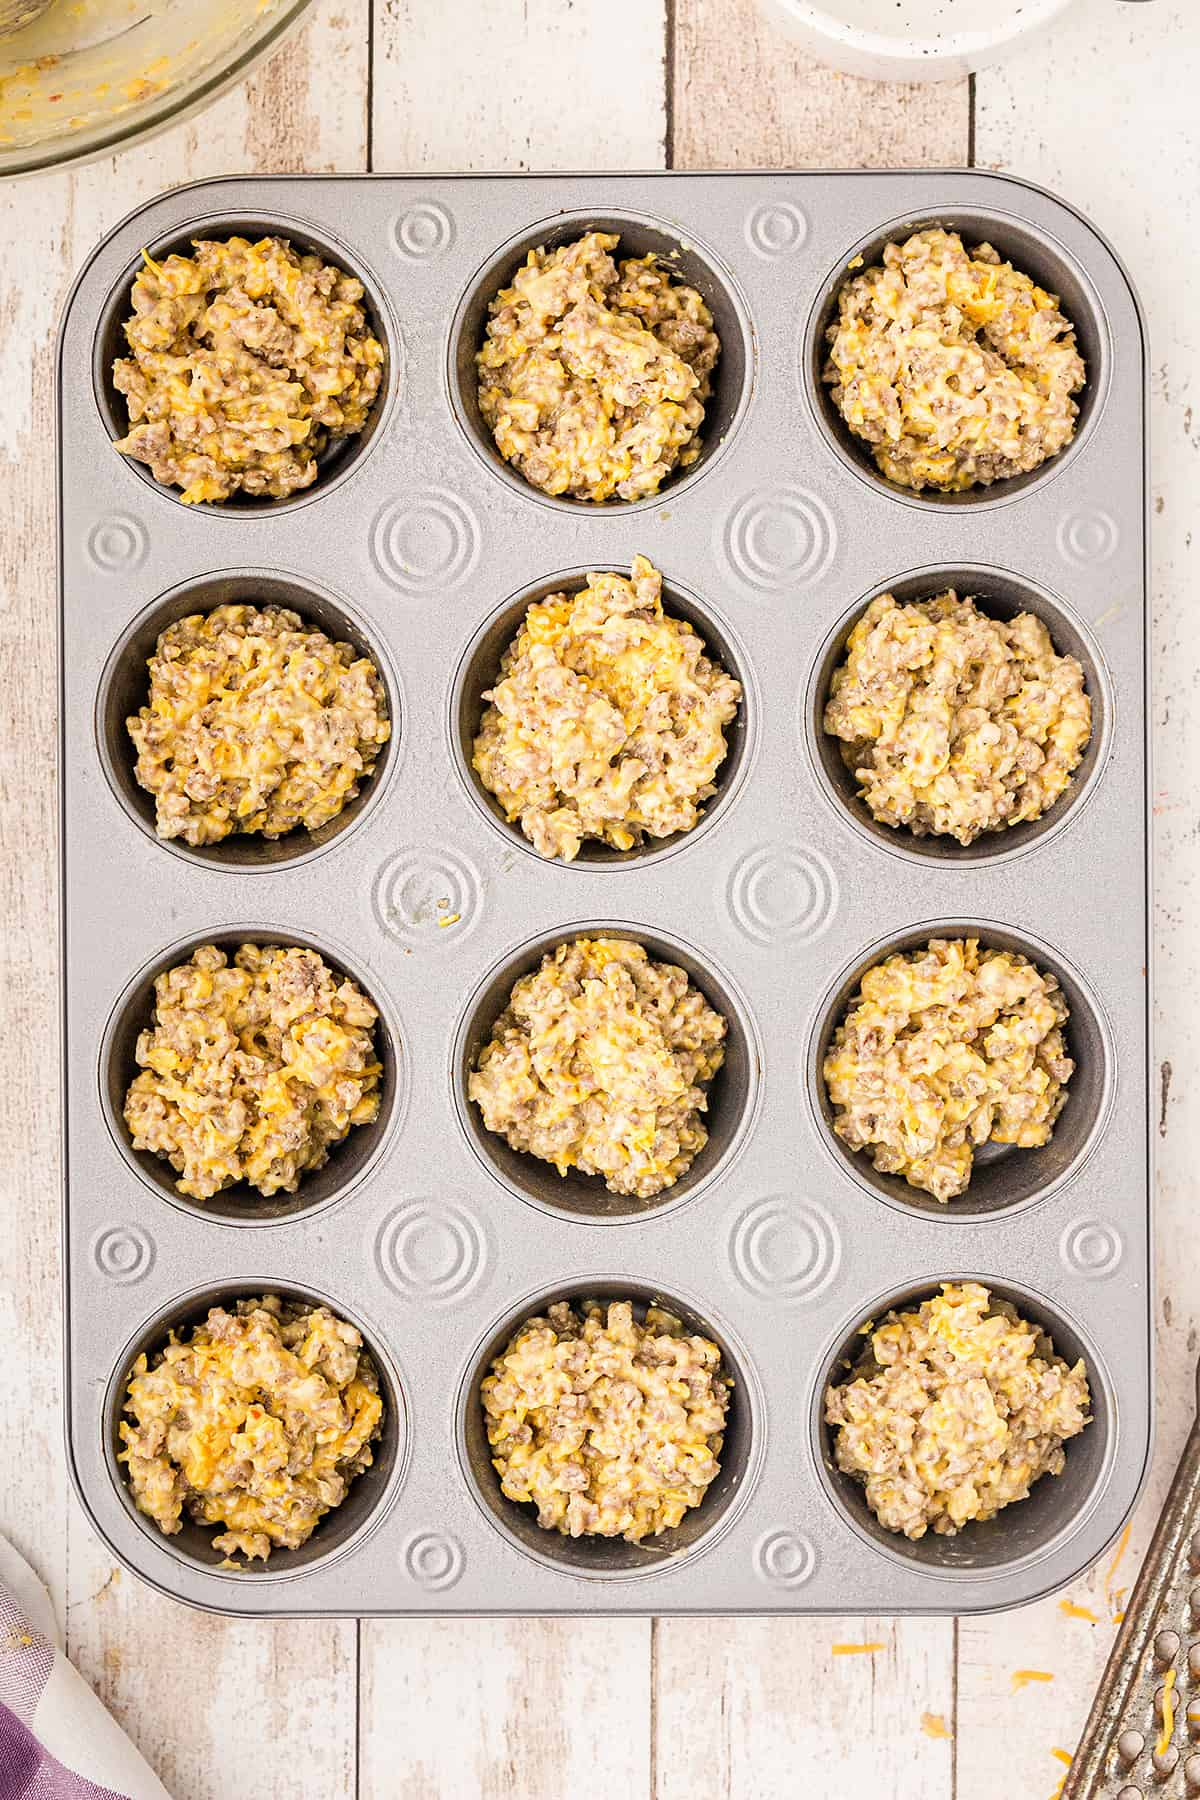 Muffin pan filled with recipe mixture.